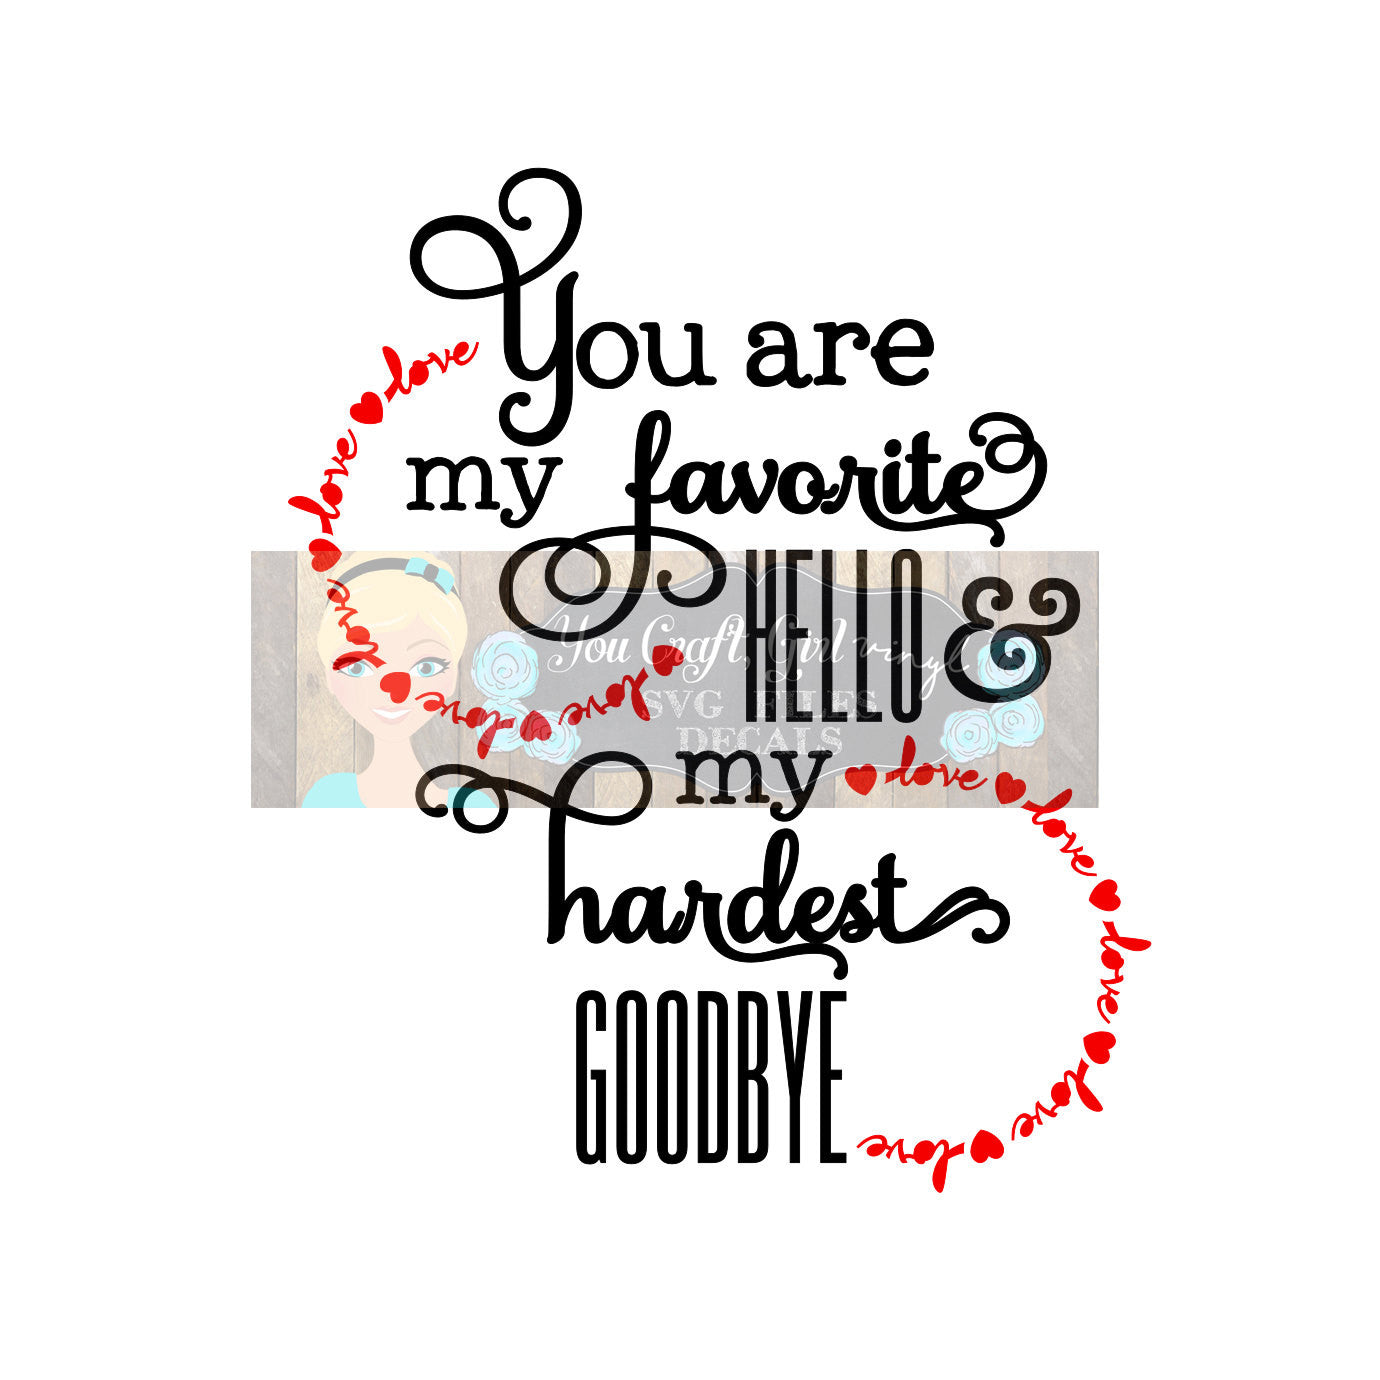 You Are My Favorite Hello And My Hardest Goodbye Svg Dxf Commercial Us Vinyl Supply Shop